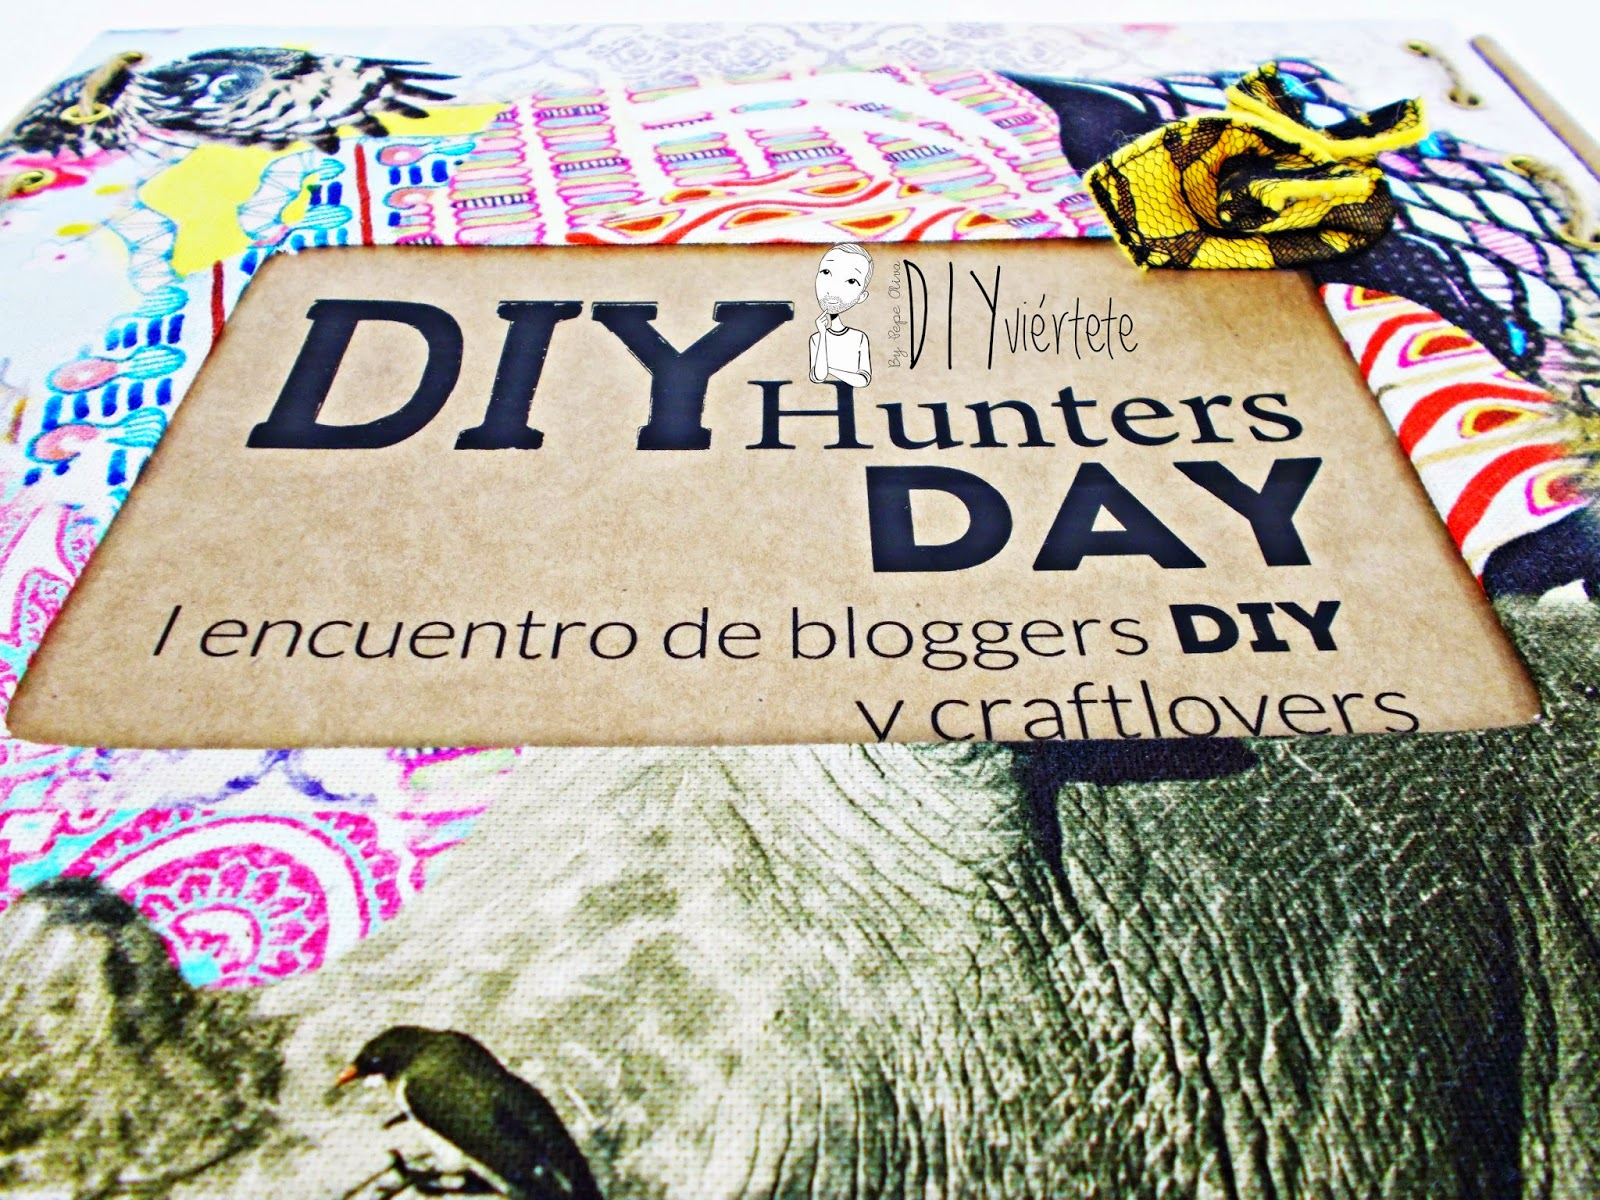 DIY-Do It Yourself-caja-cartón-selfpackaging-customizar-handbox-yodona-diyhuntersday-craftlovers-99